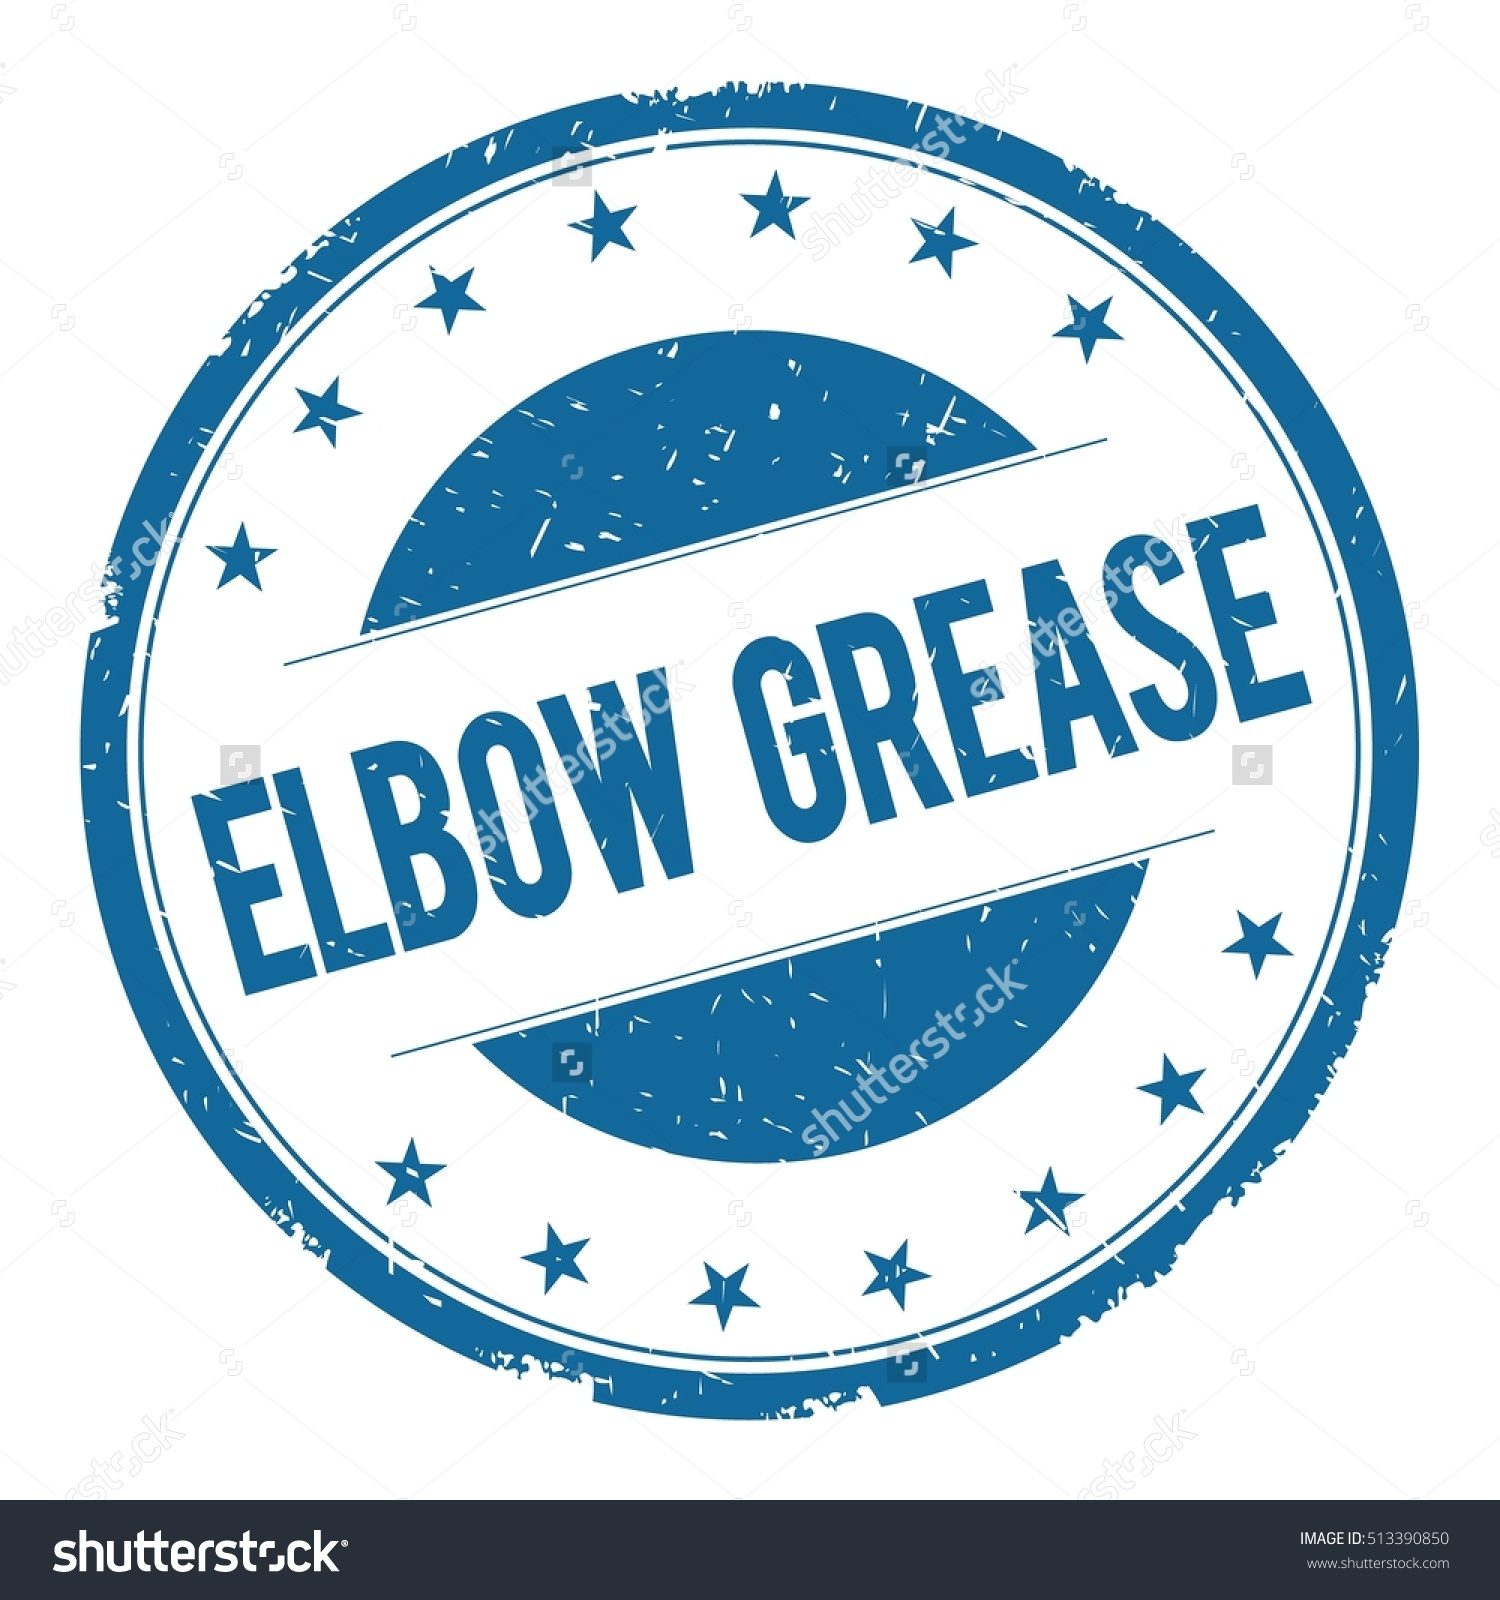 Elbow Grease Stamp Sign Text Word Stock Illustration 513390850.